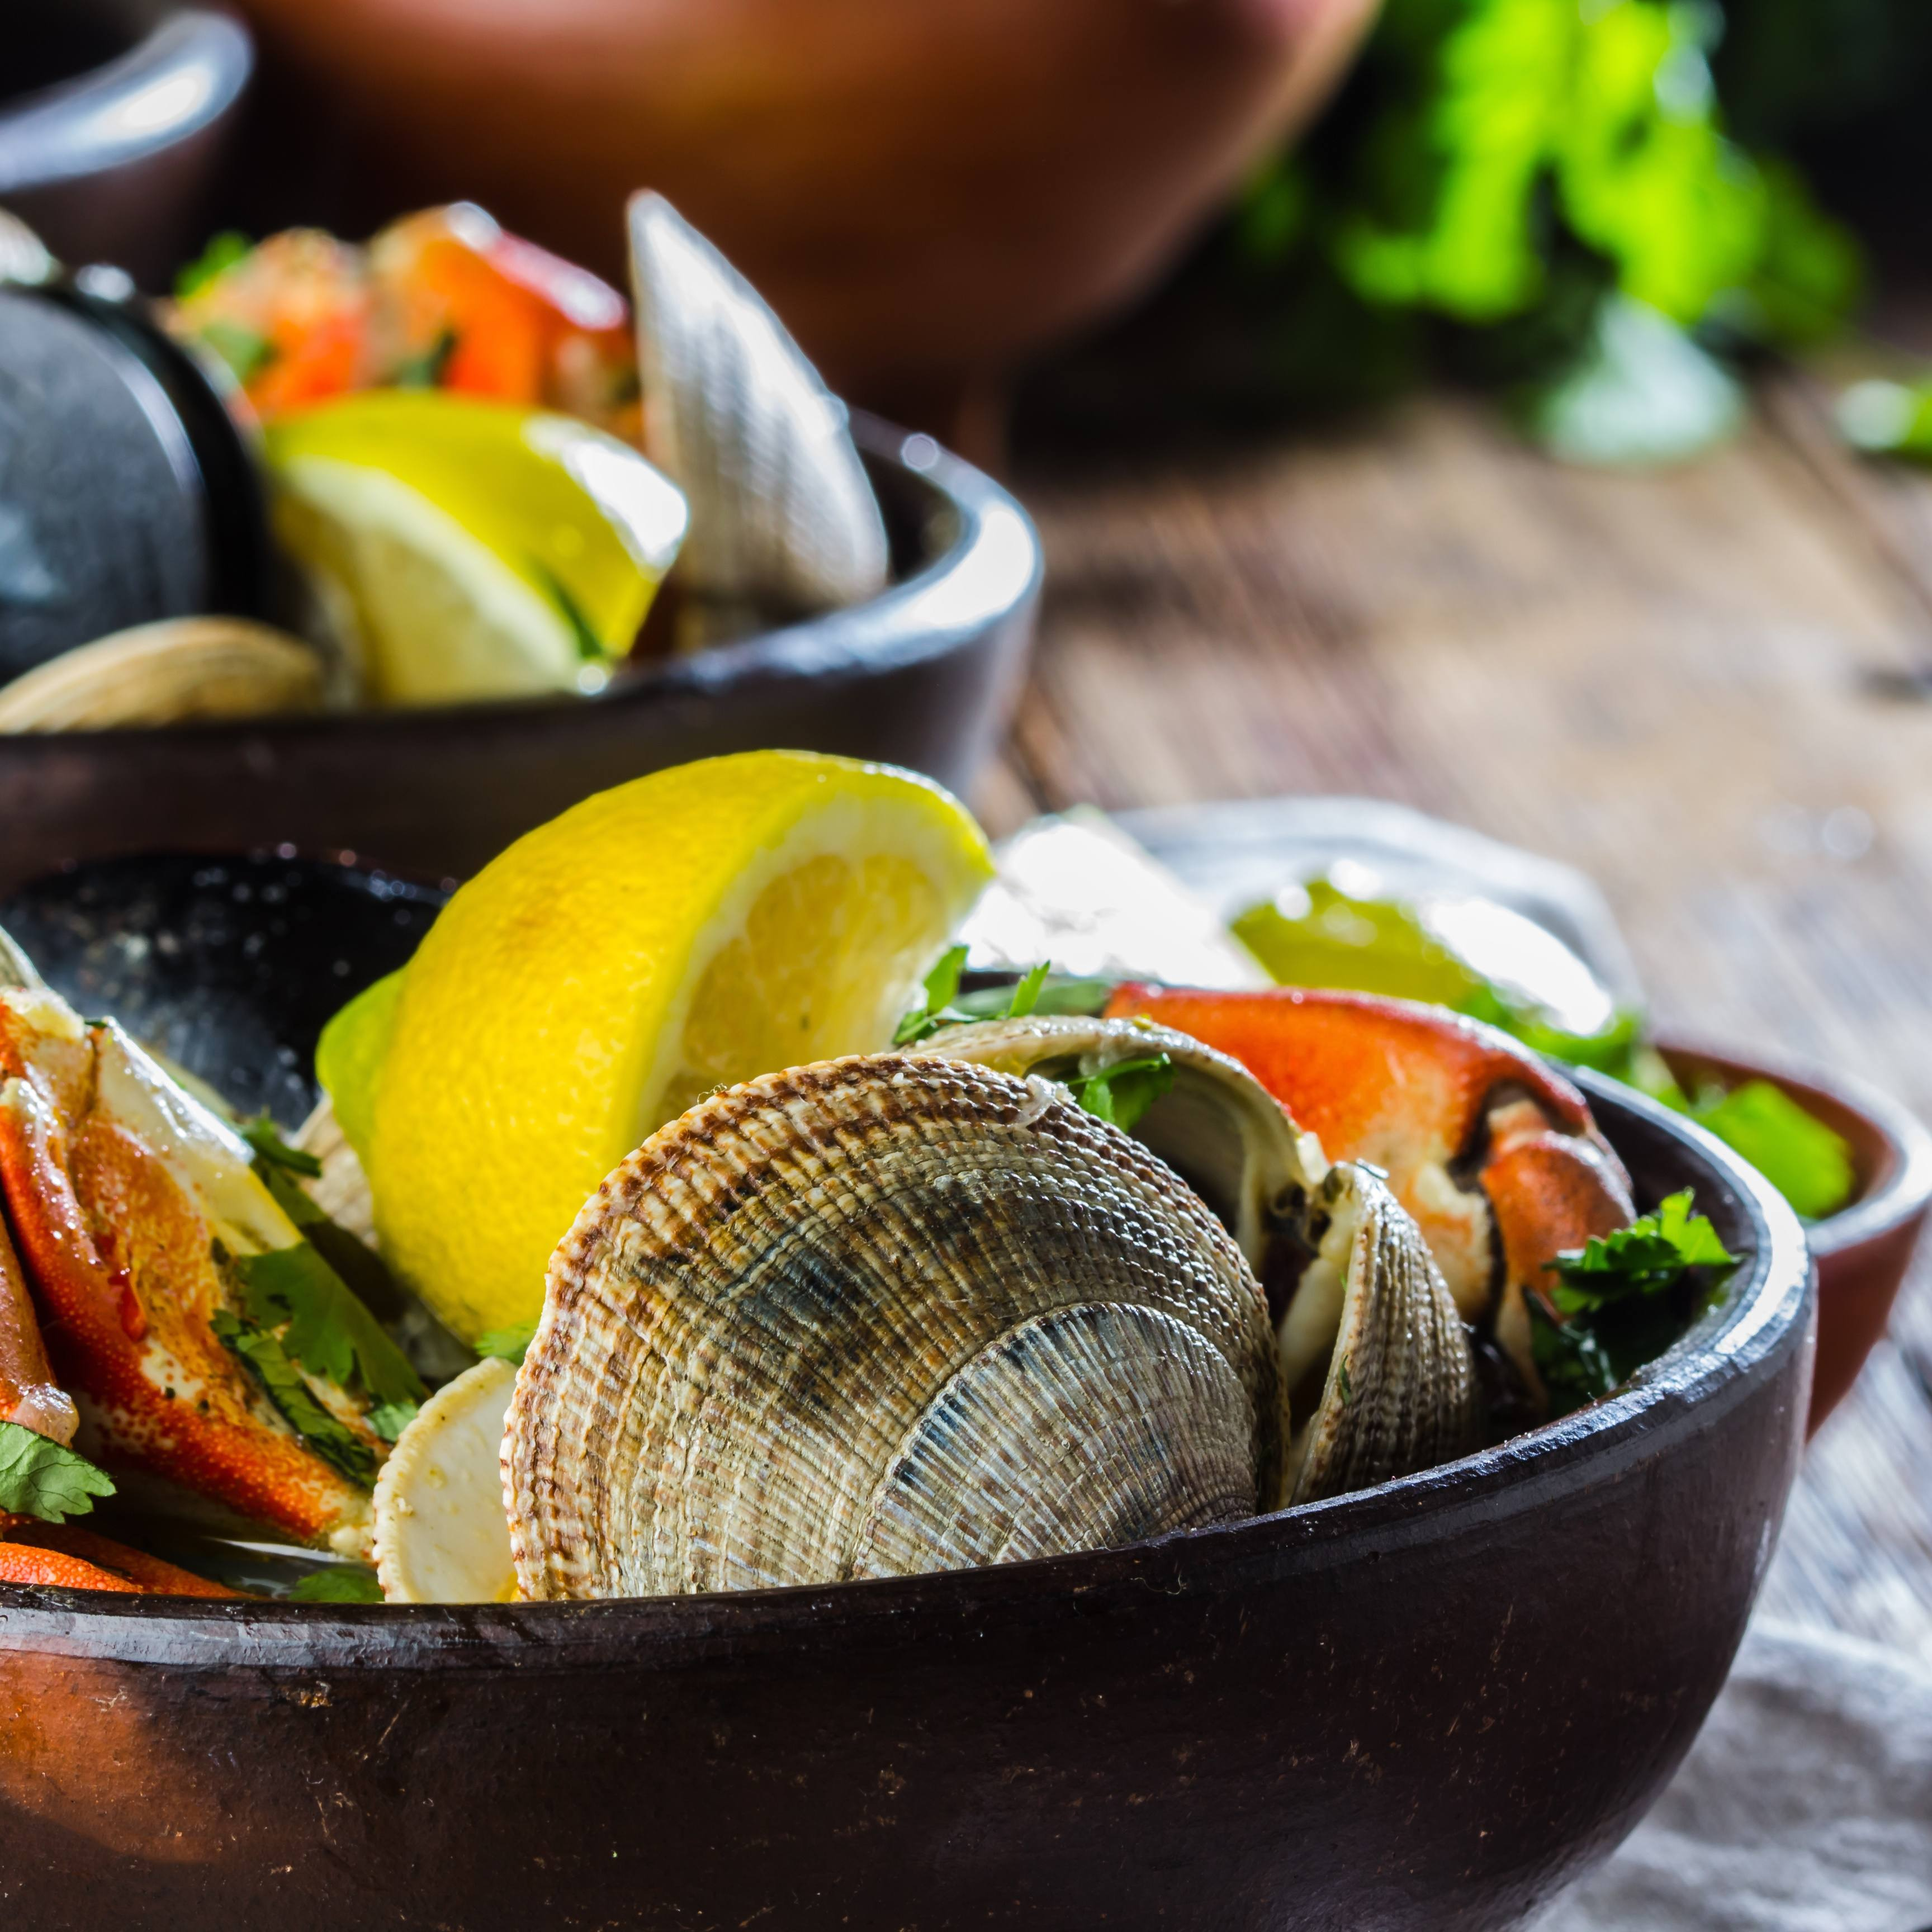 Seafood shellfish soup of mussels, crabs, clams and other shellfish served in clay bowls.